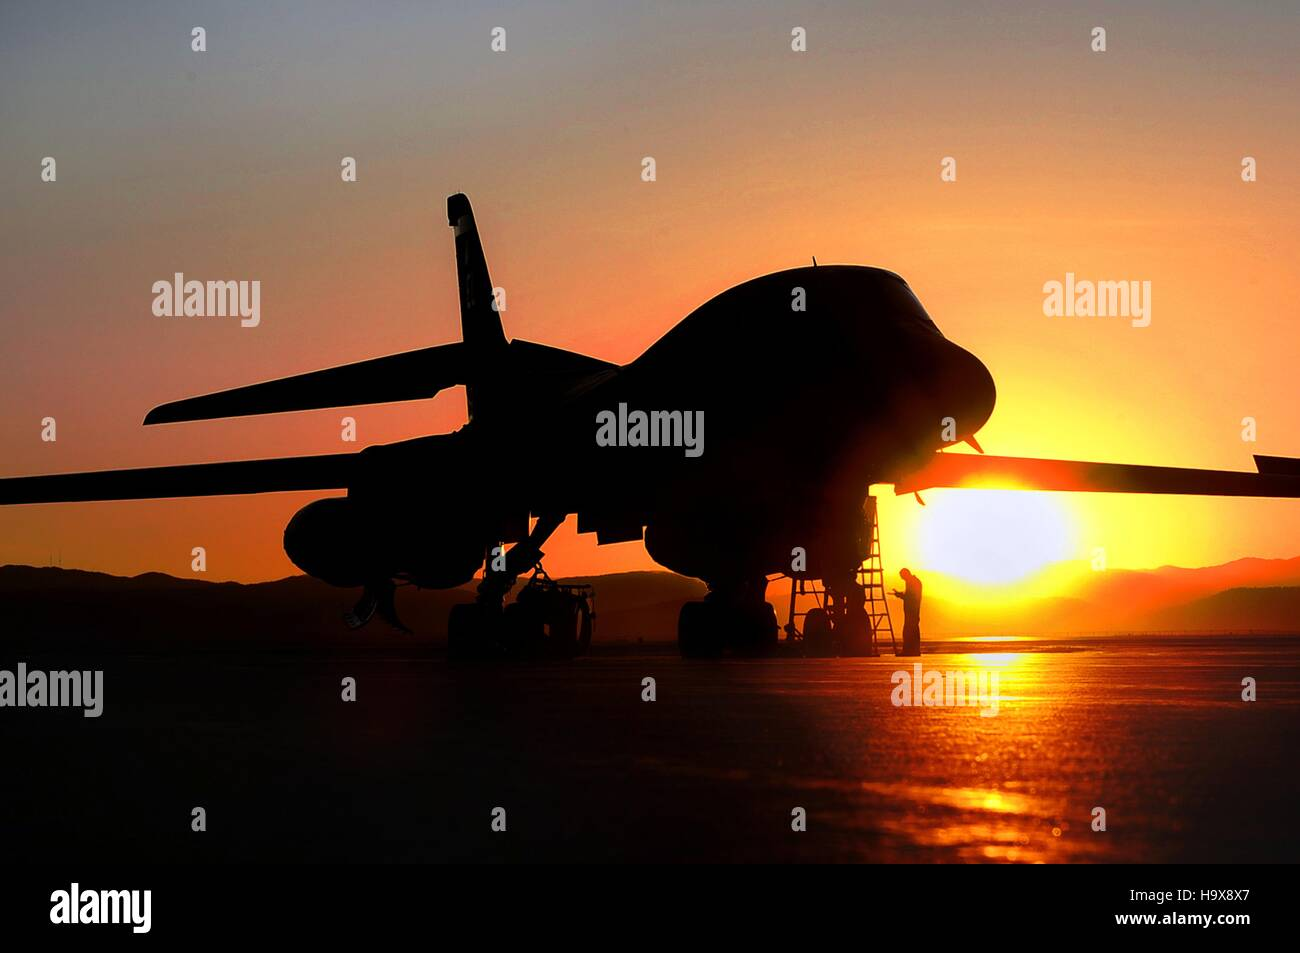 A B-1B Lancer jet-powered heavy strategic bomber aircraft sits on the runway at sunset at the Ellsworth Air Force - Stock Image